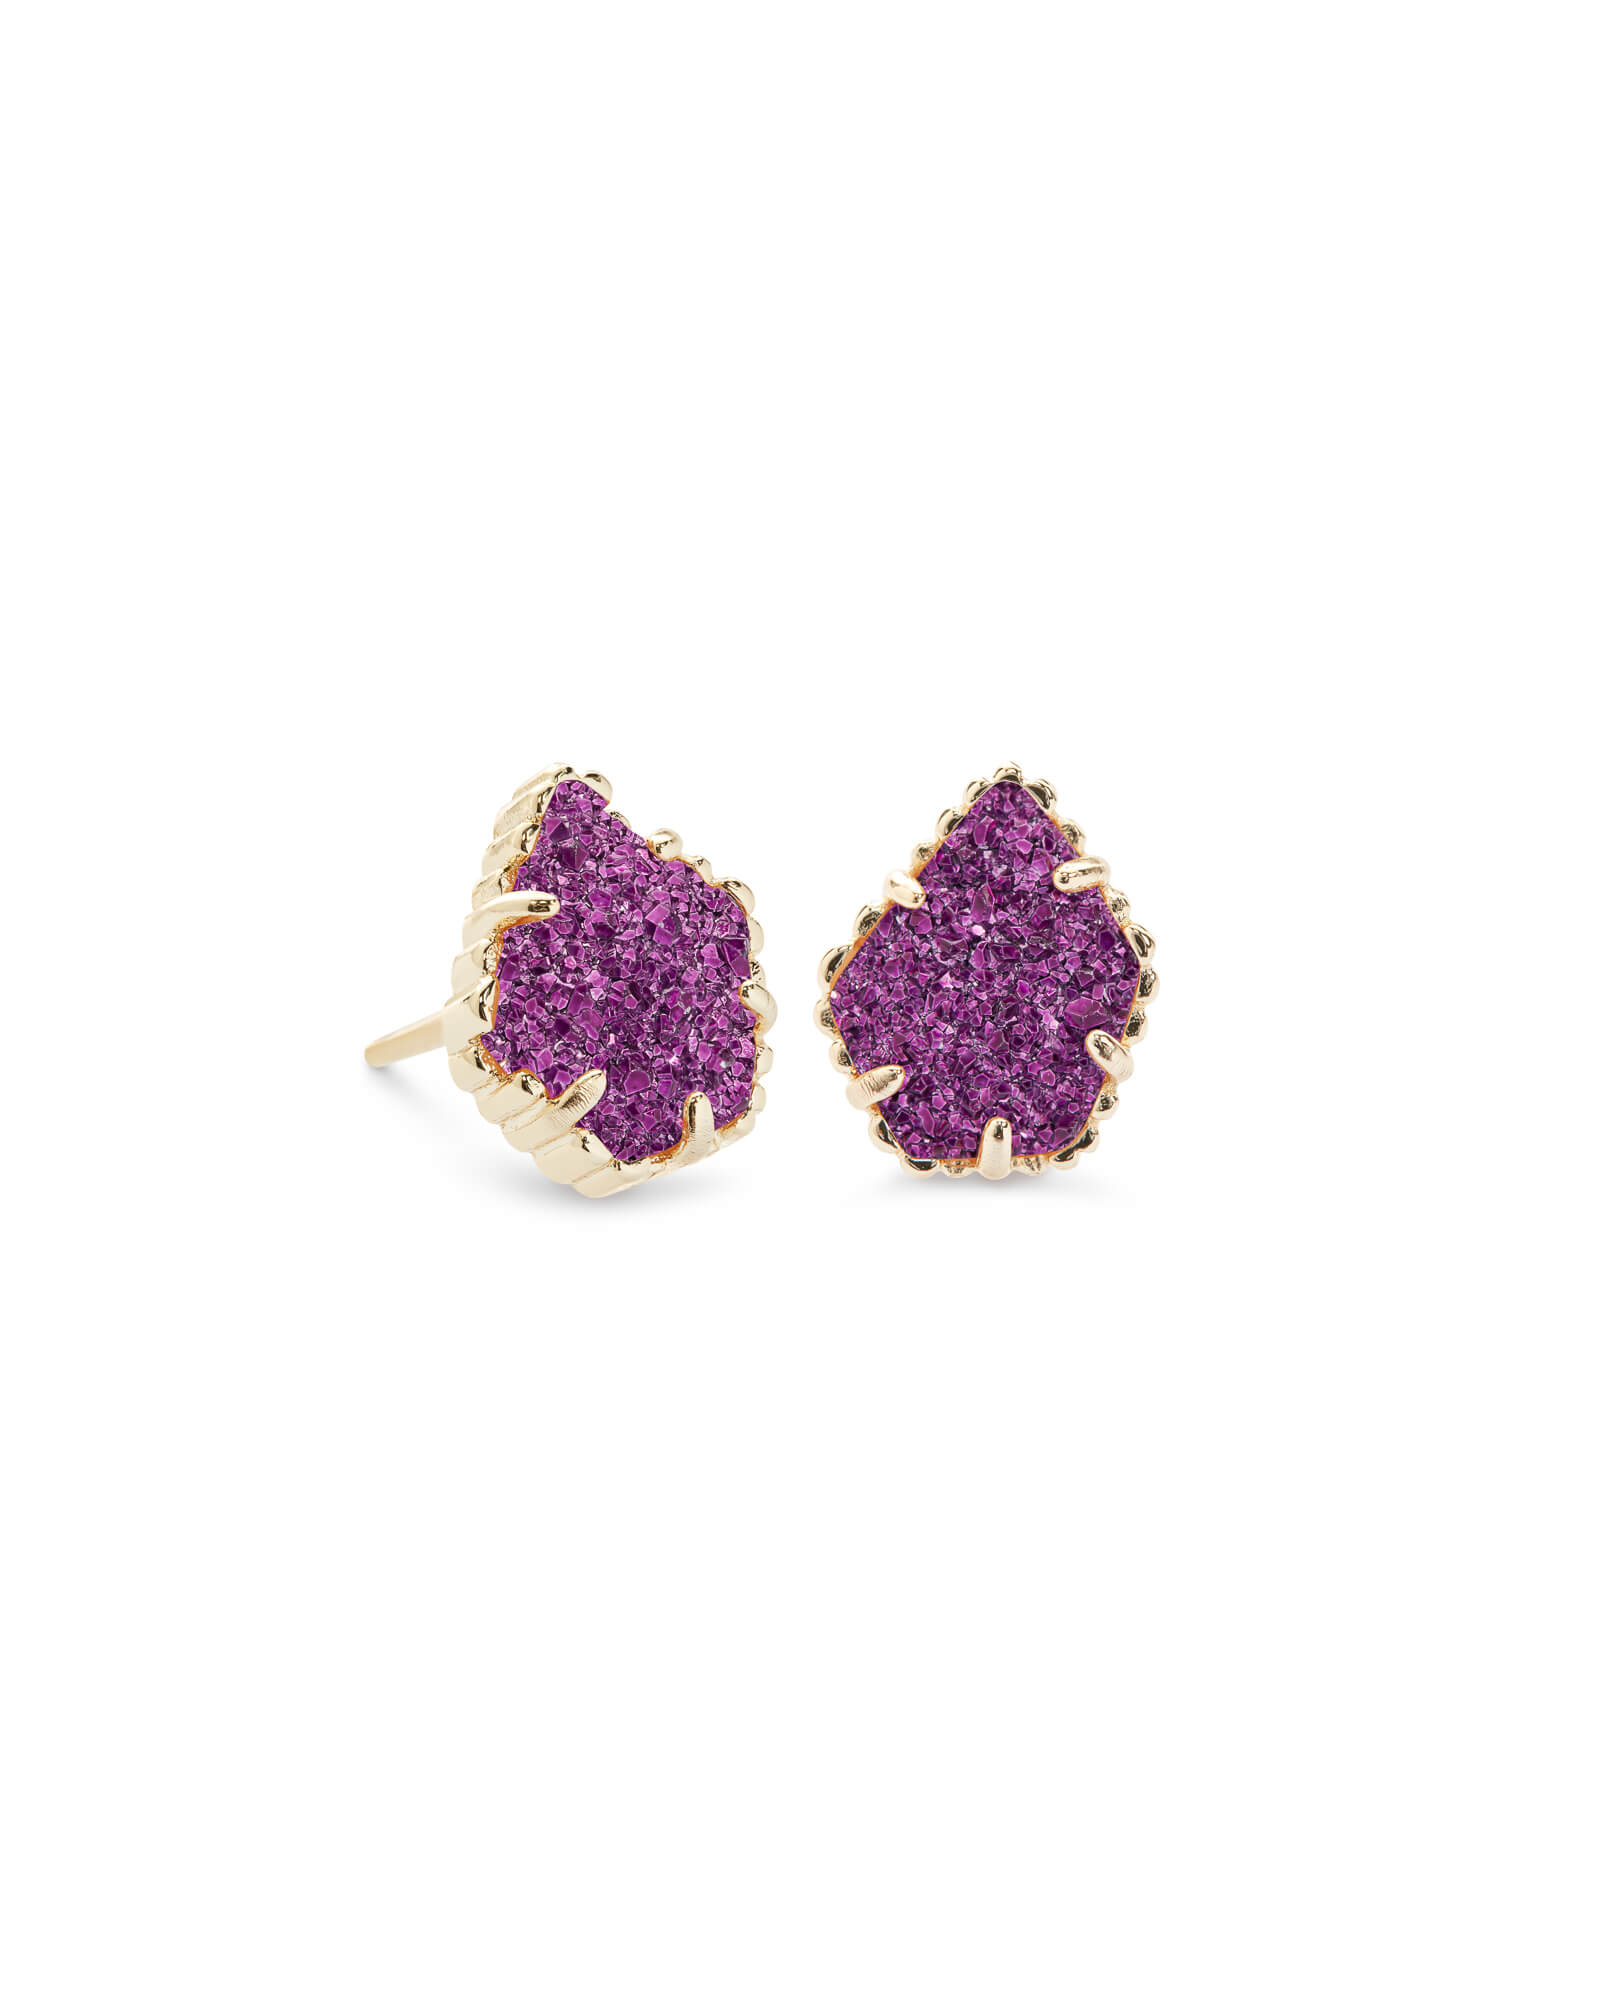 Tessa Gold Stud Earrings in Amethyst Drusy